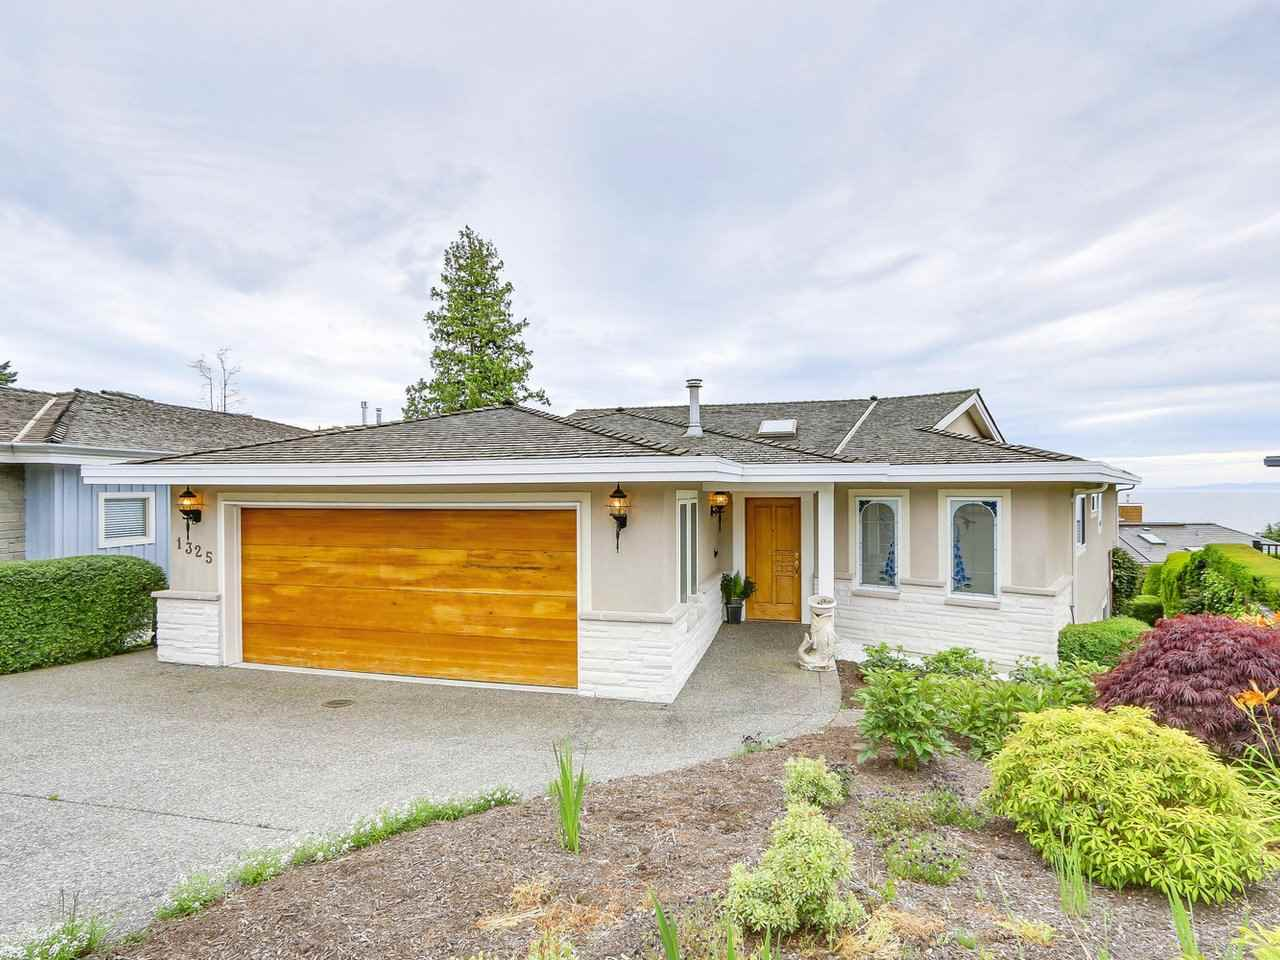 Main Photo: 1325 132B Street in Surrey: Crescent Bch Ocean Pk. House for sale (South Surrey White Rock)  : MLS®# R2185643